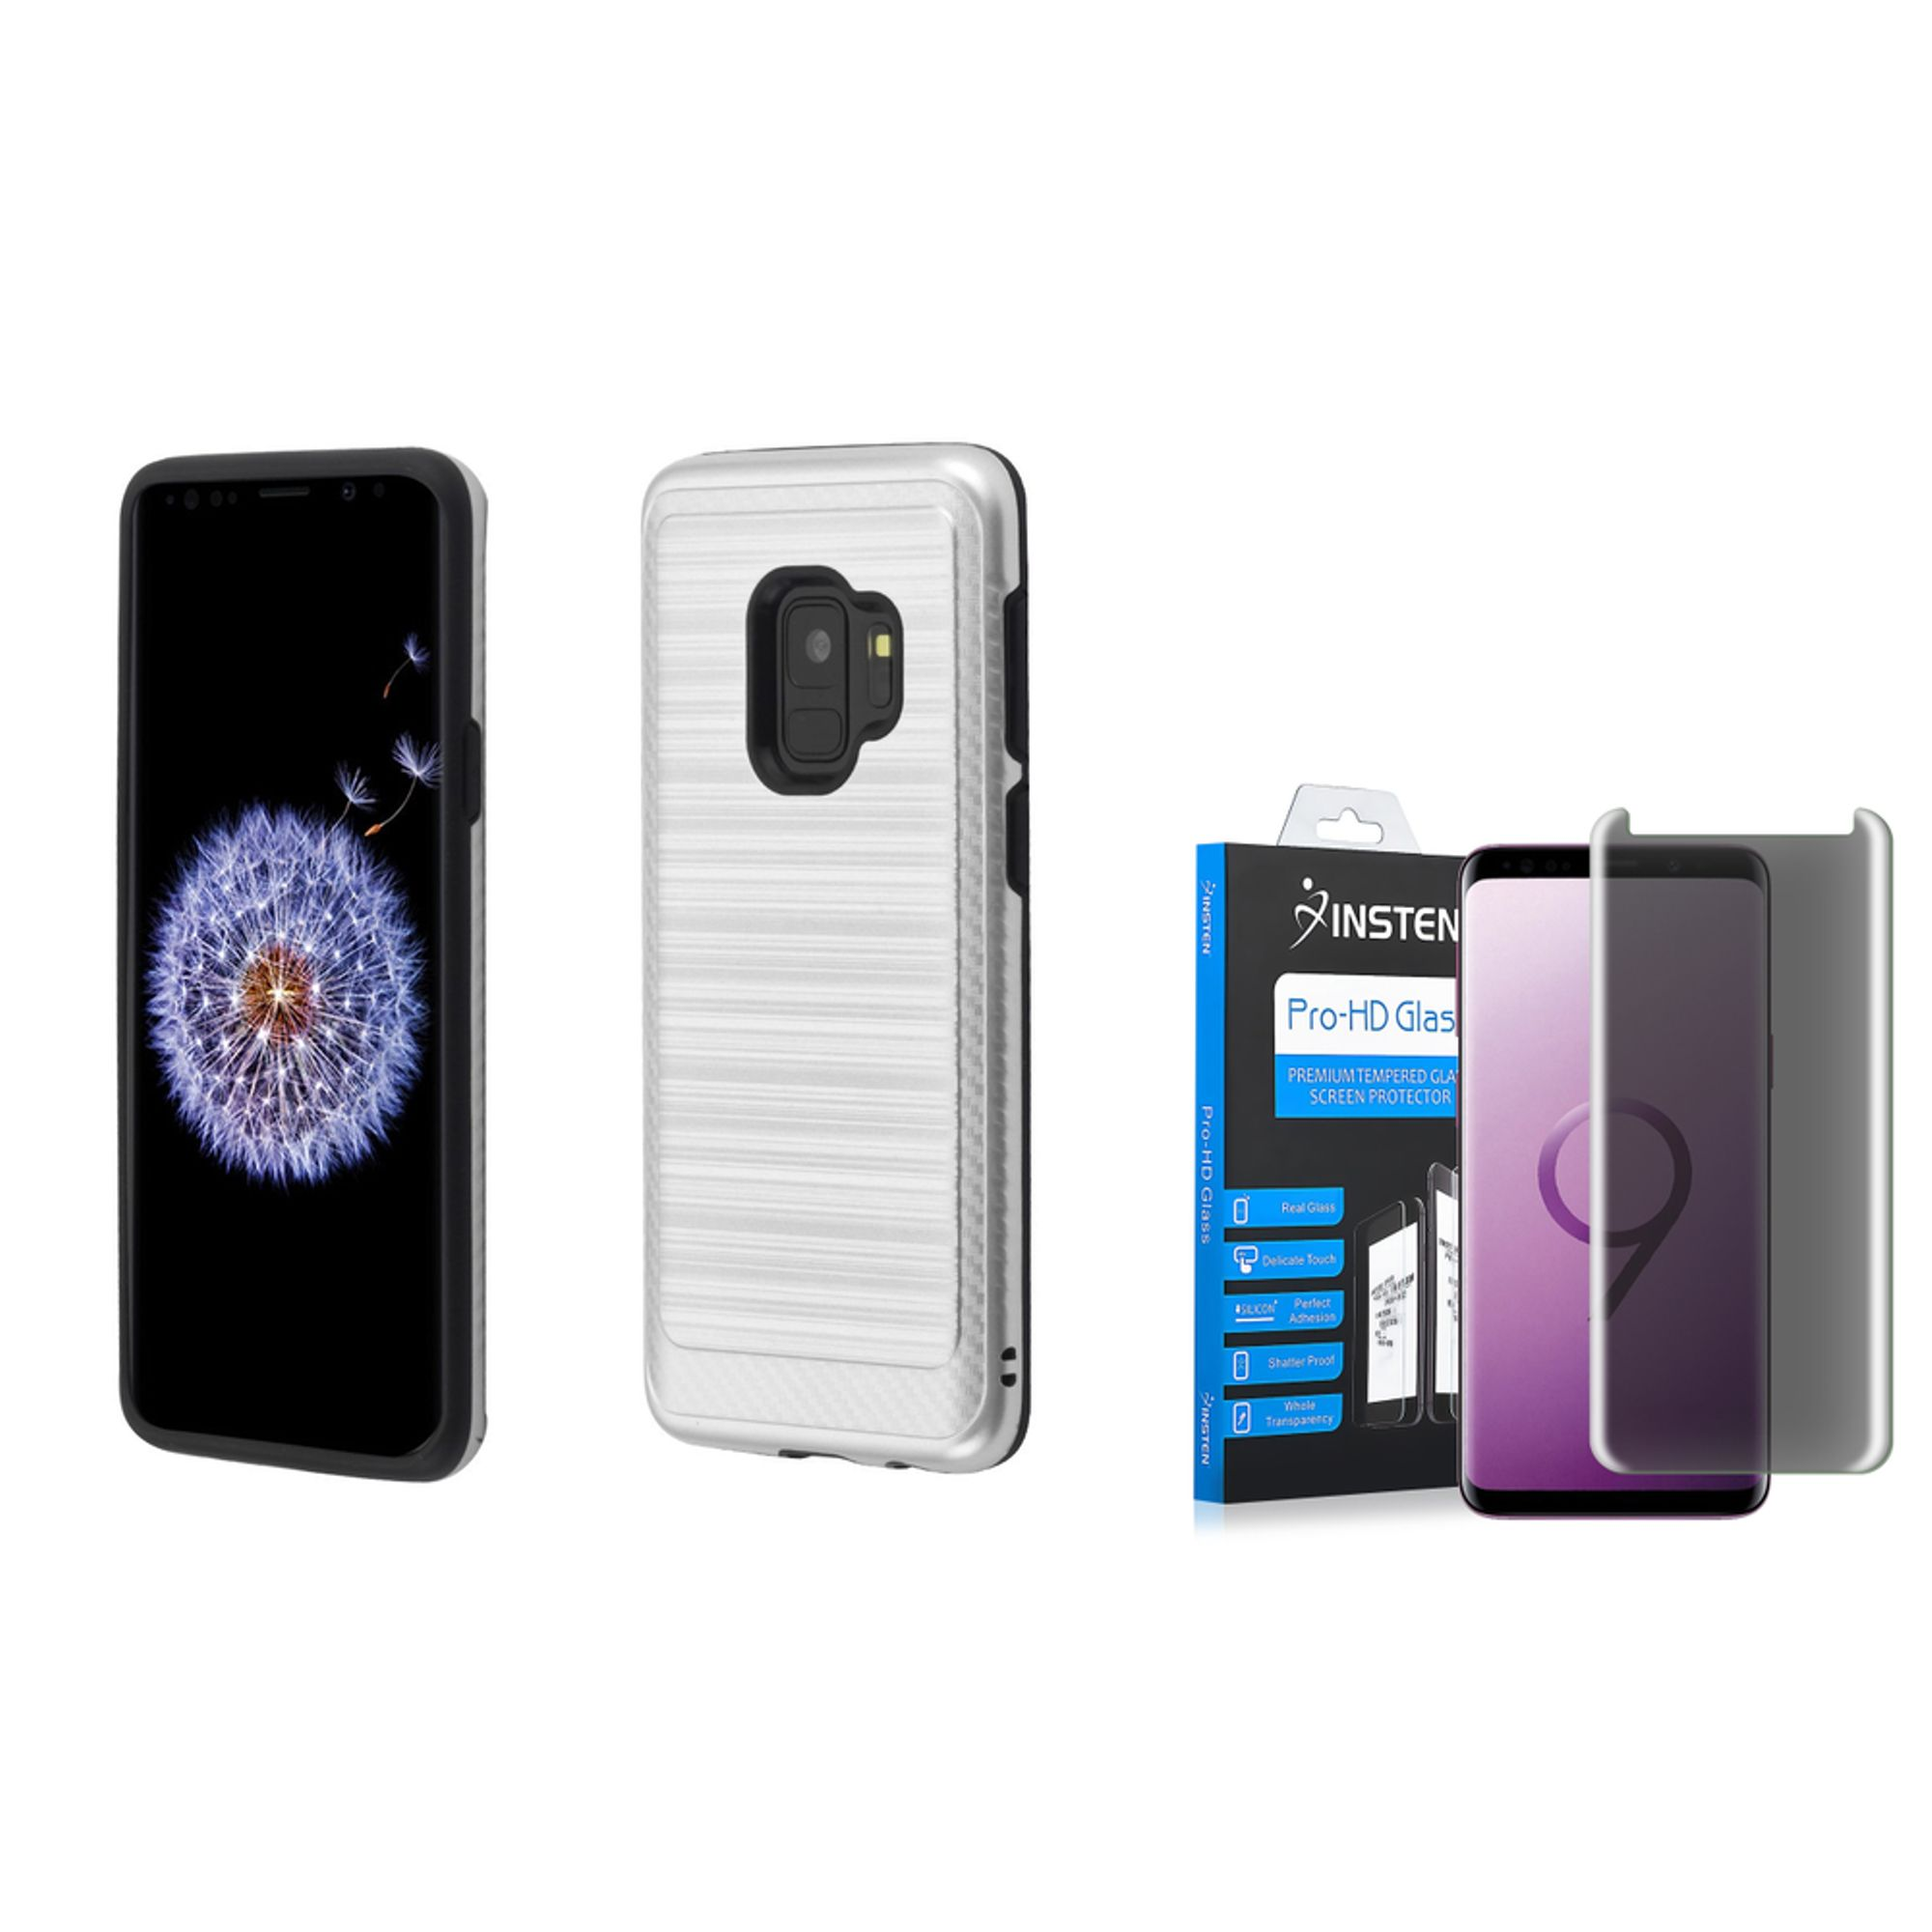 Galaxy s9 case and screen protector privacy glass by Insten Carbon Fiber 2-Layer Hybrid Brushed Hard Plastic/Soft TPU Rubber with Card Slot Phone Case Cover For Samsung Galaxy S9, Silver/Black